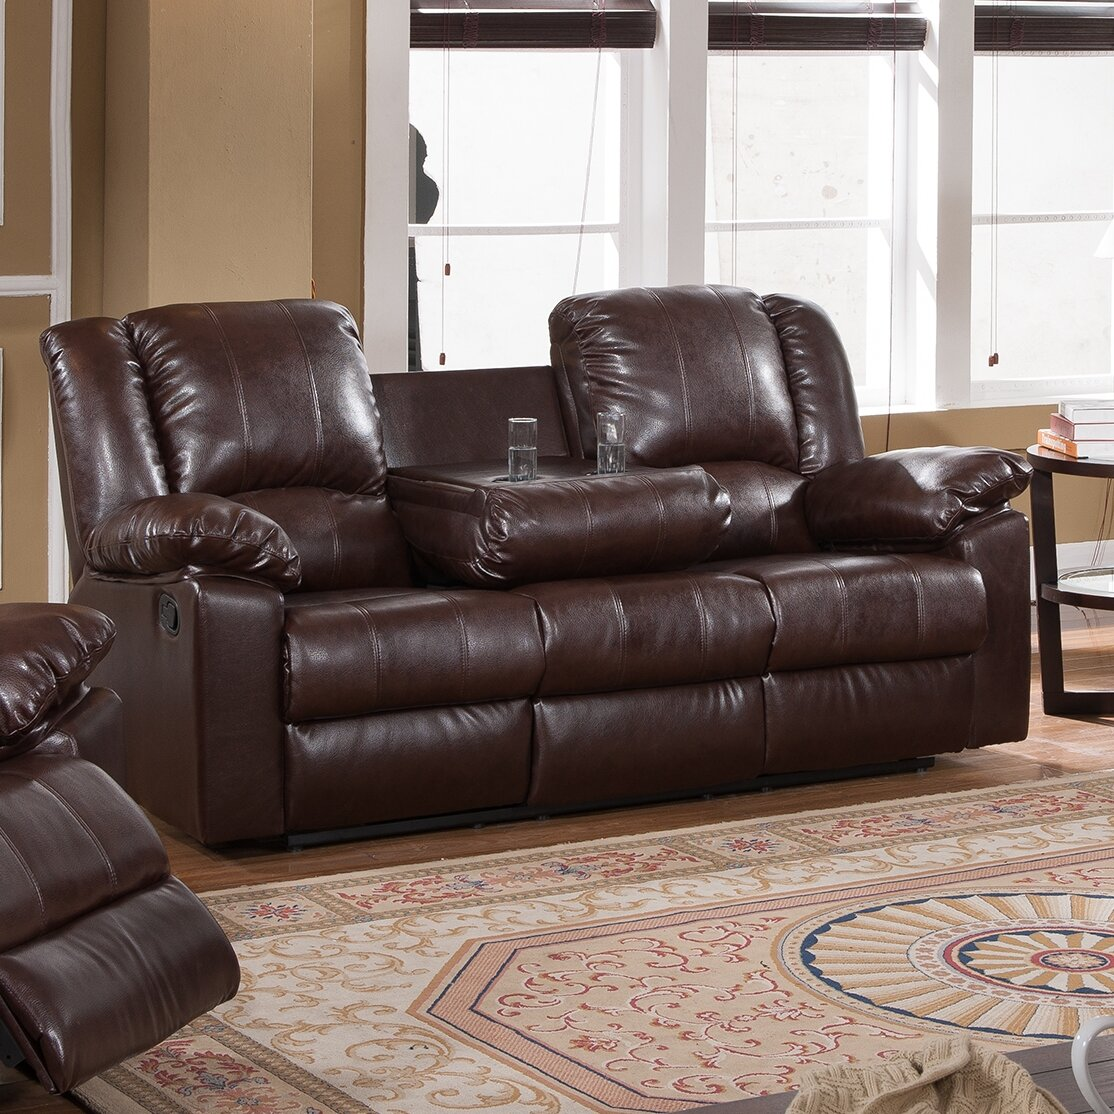 milton green star burgas reclining sofa with drop-down cup holder